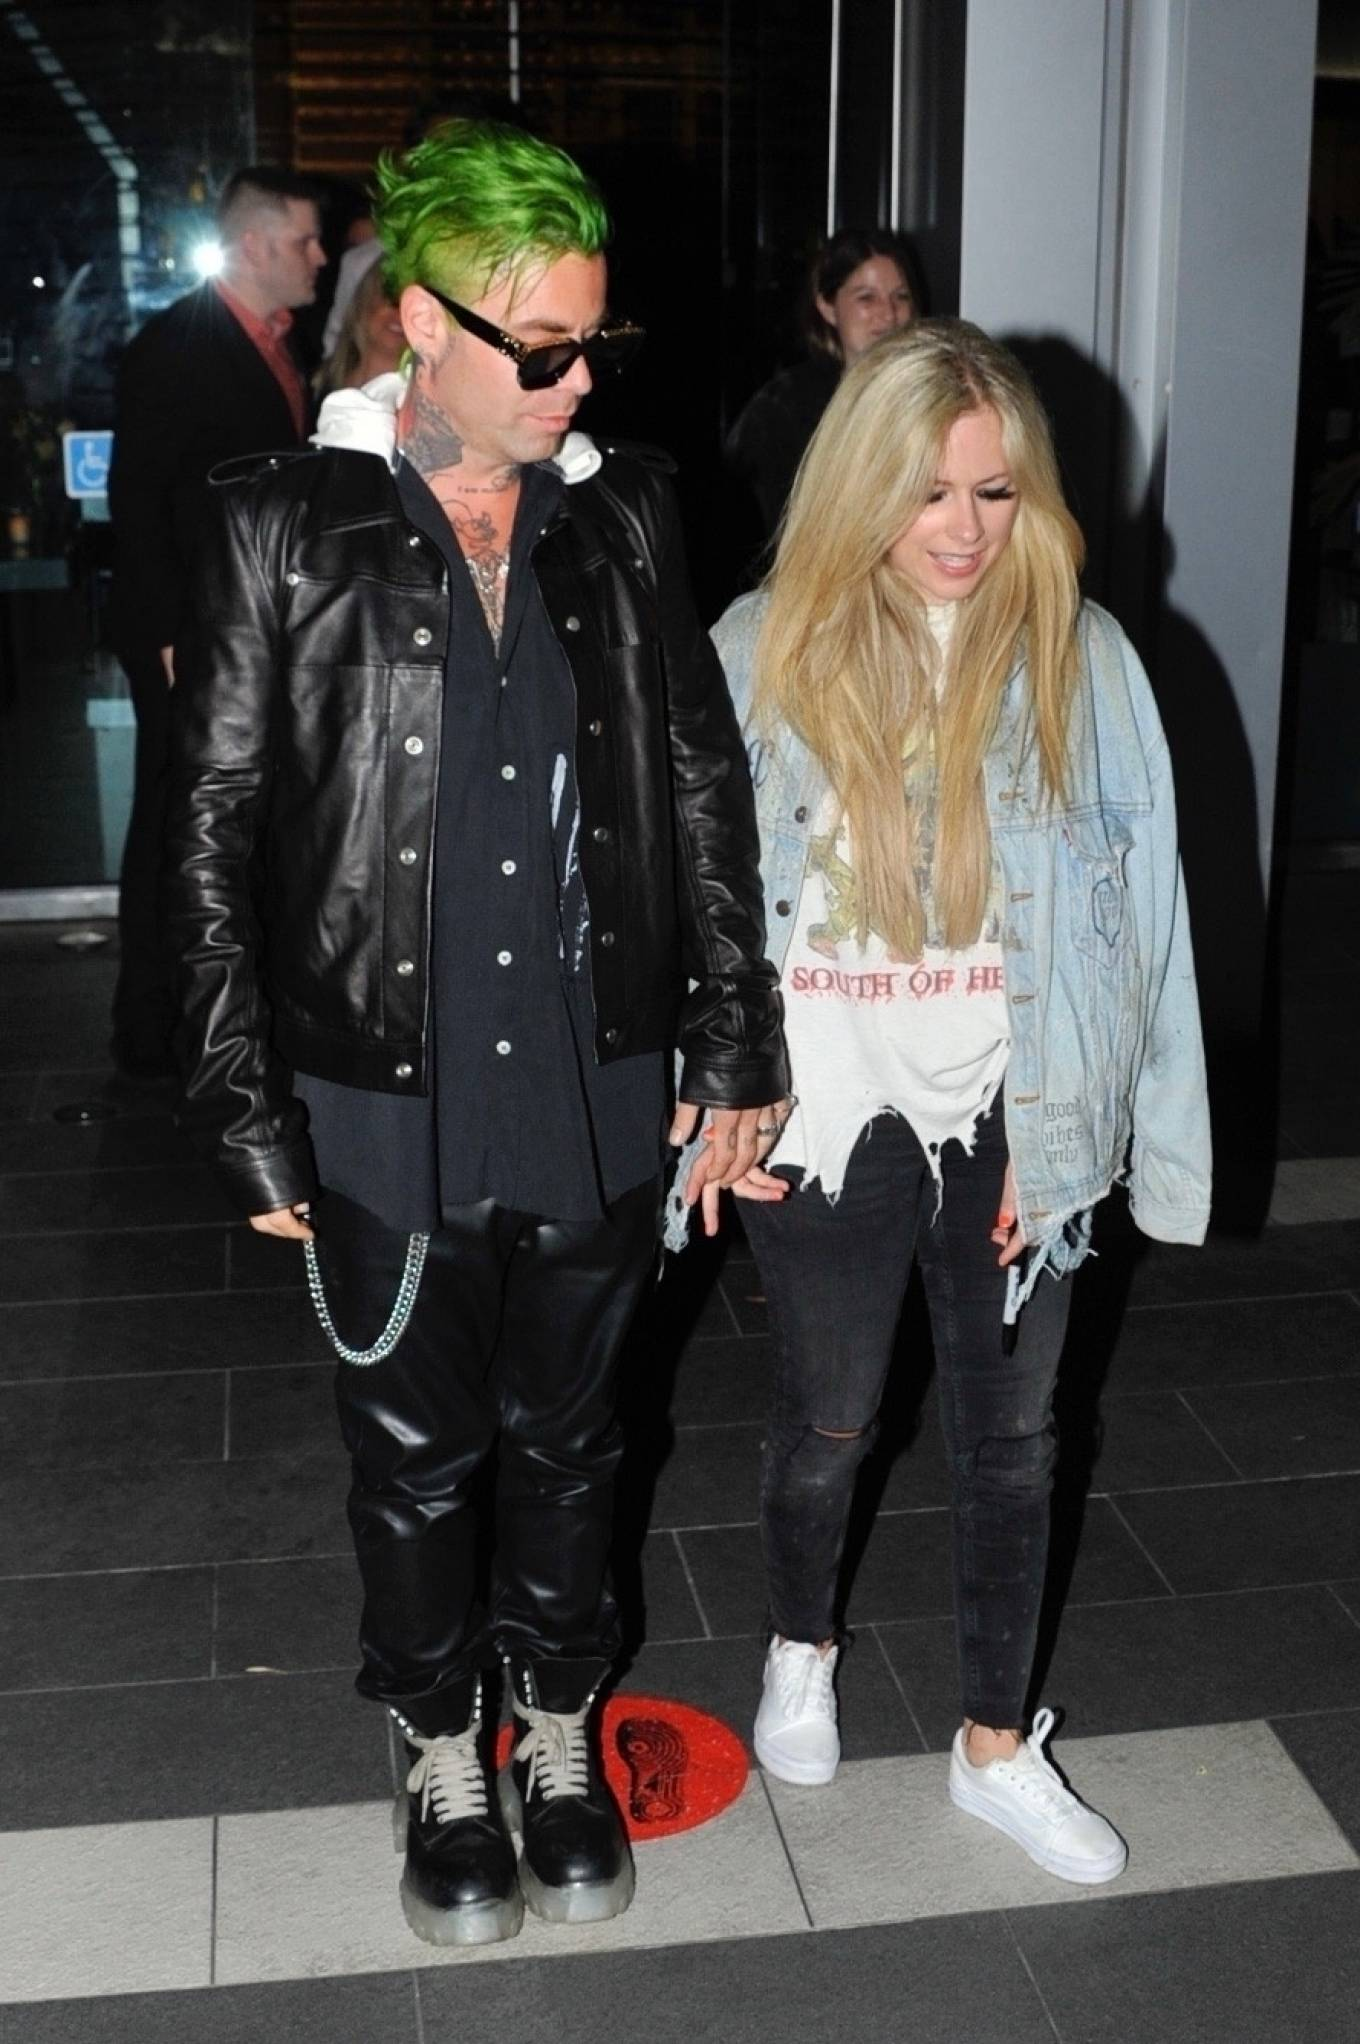 Avril Lavigne - Seen after a dinner date at BOA Steakhouse in West Hollywood